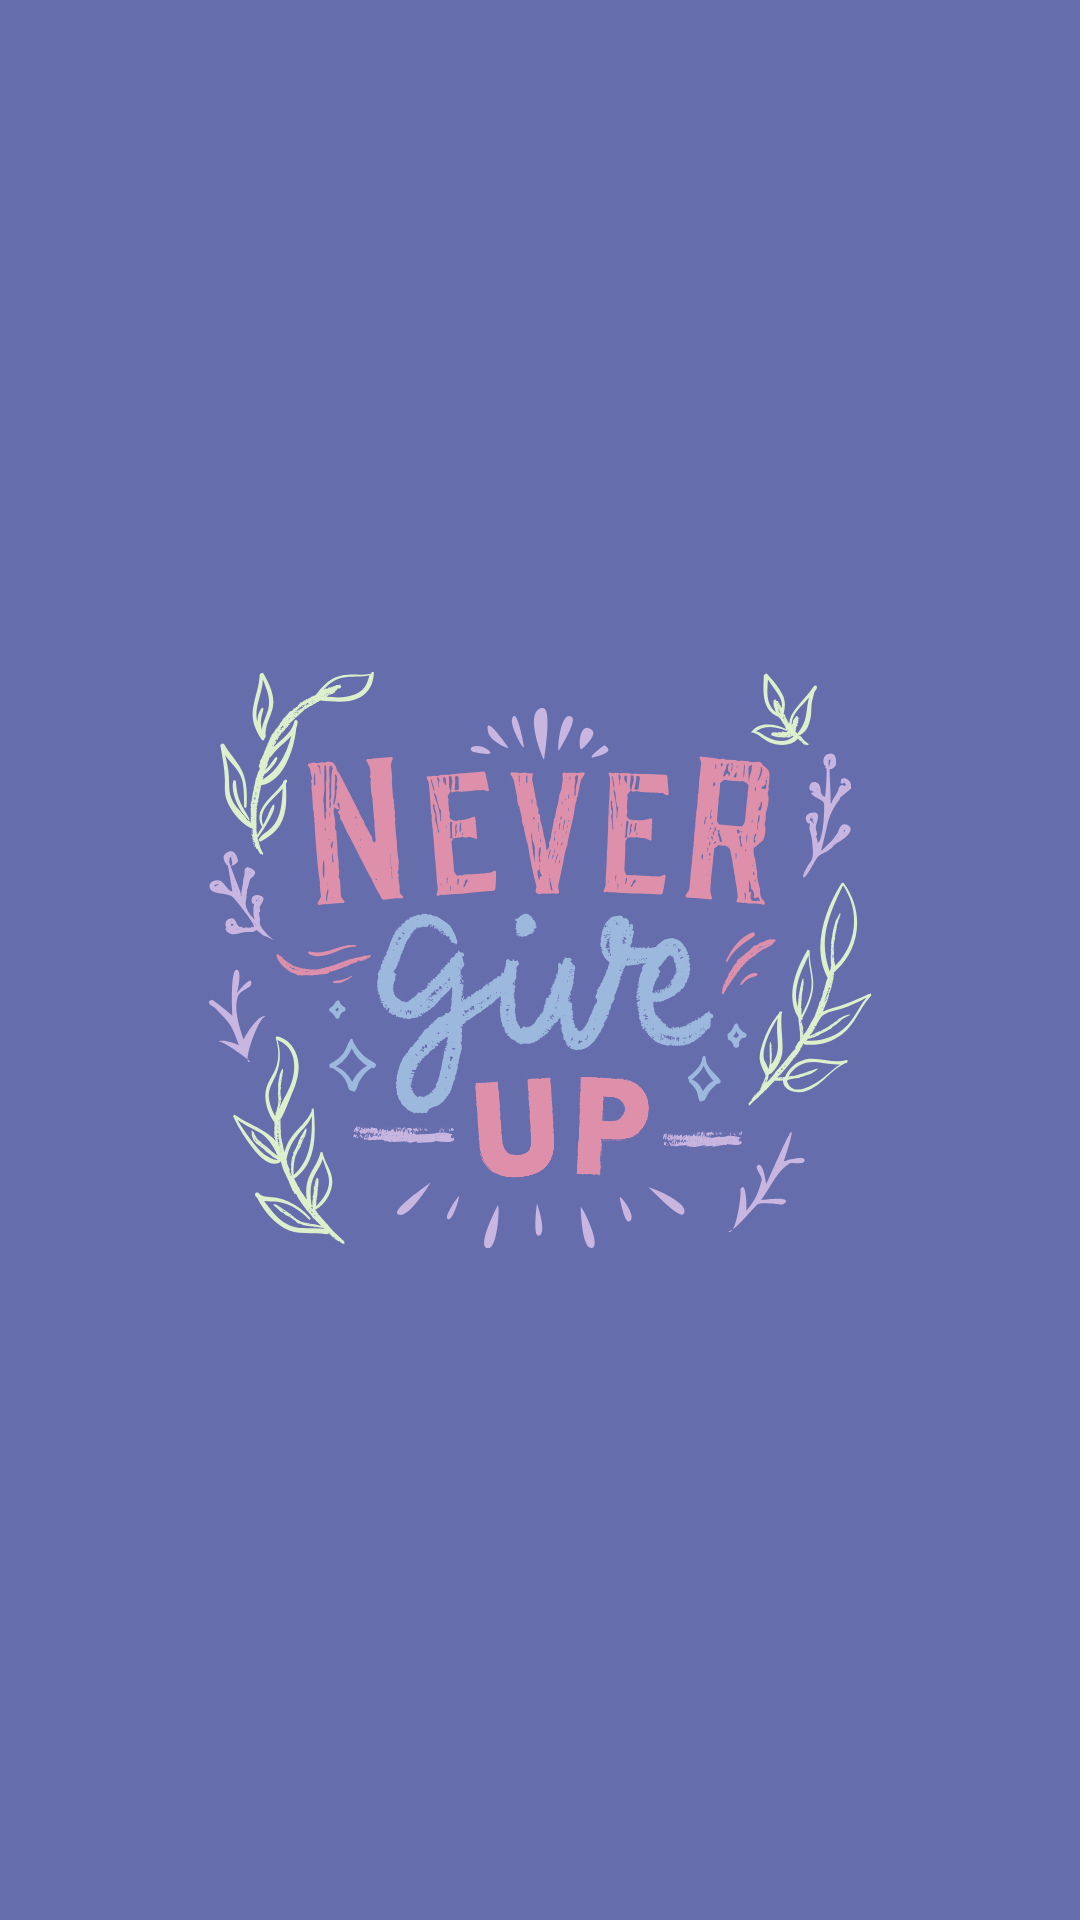 15 Unique and Inspirational Wallpapers for iPhone ! | Never give up